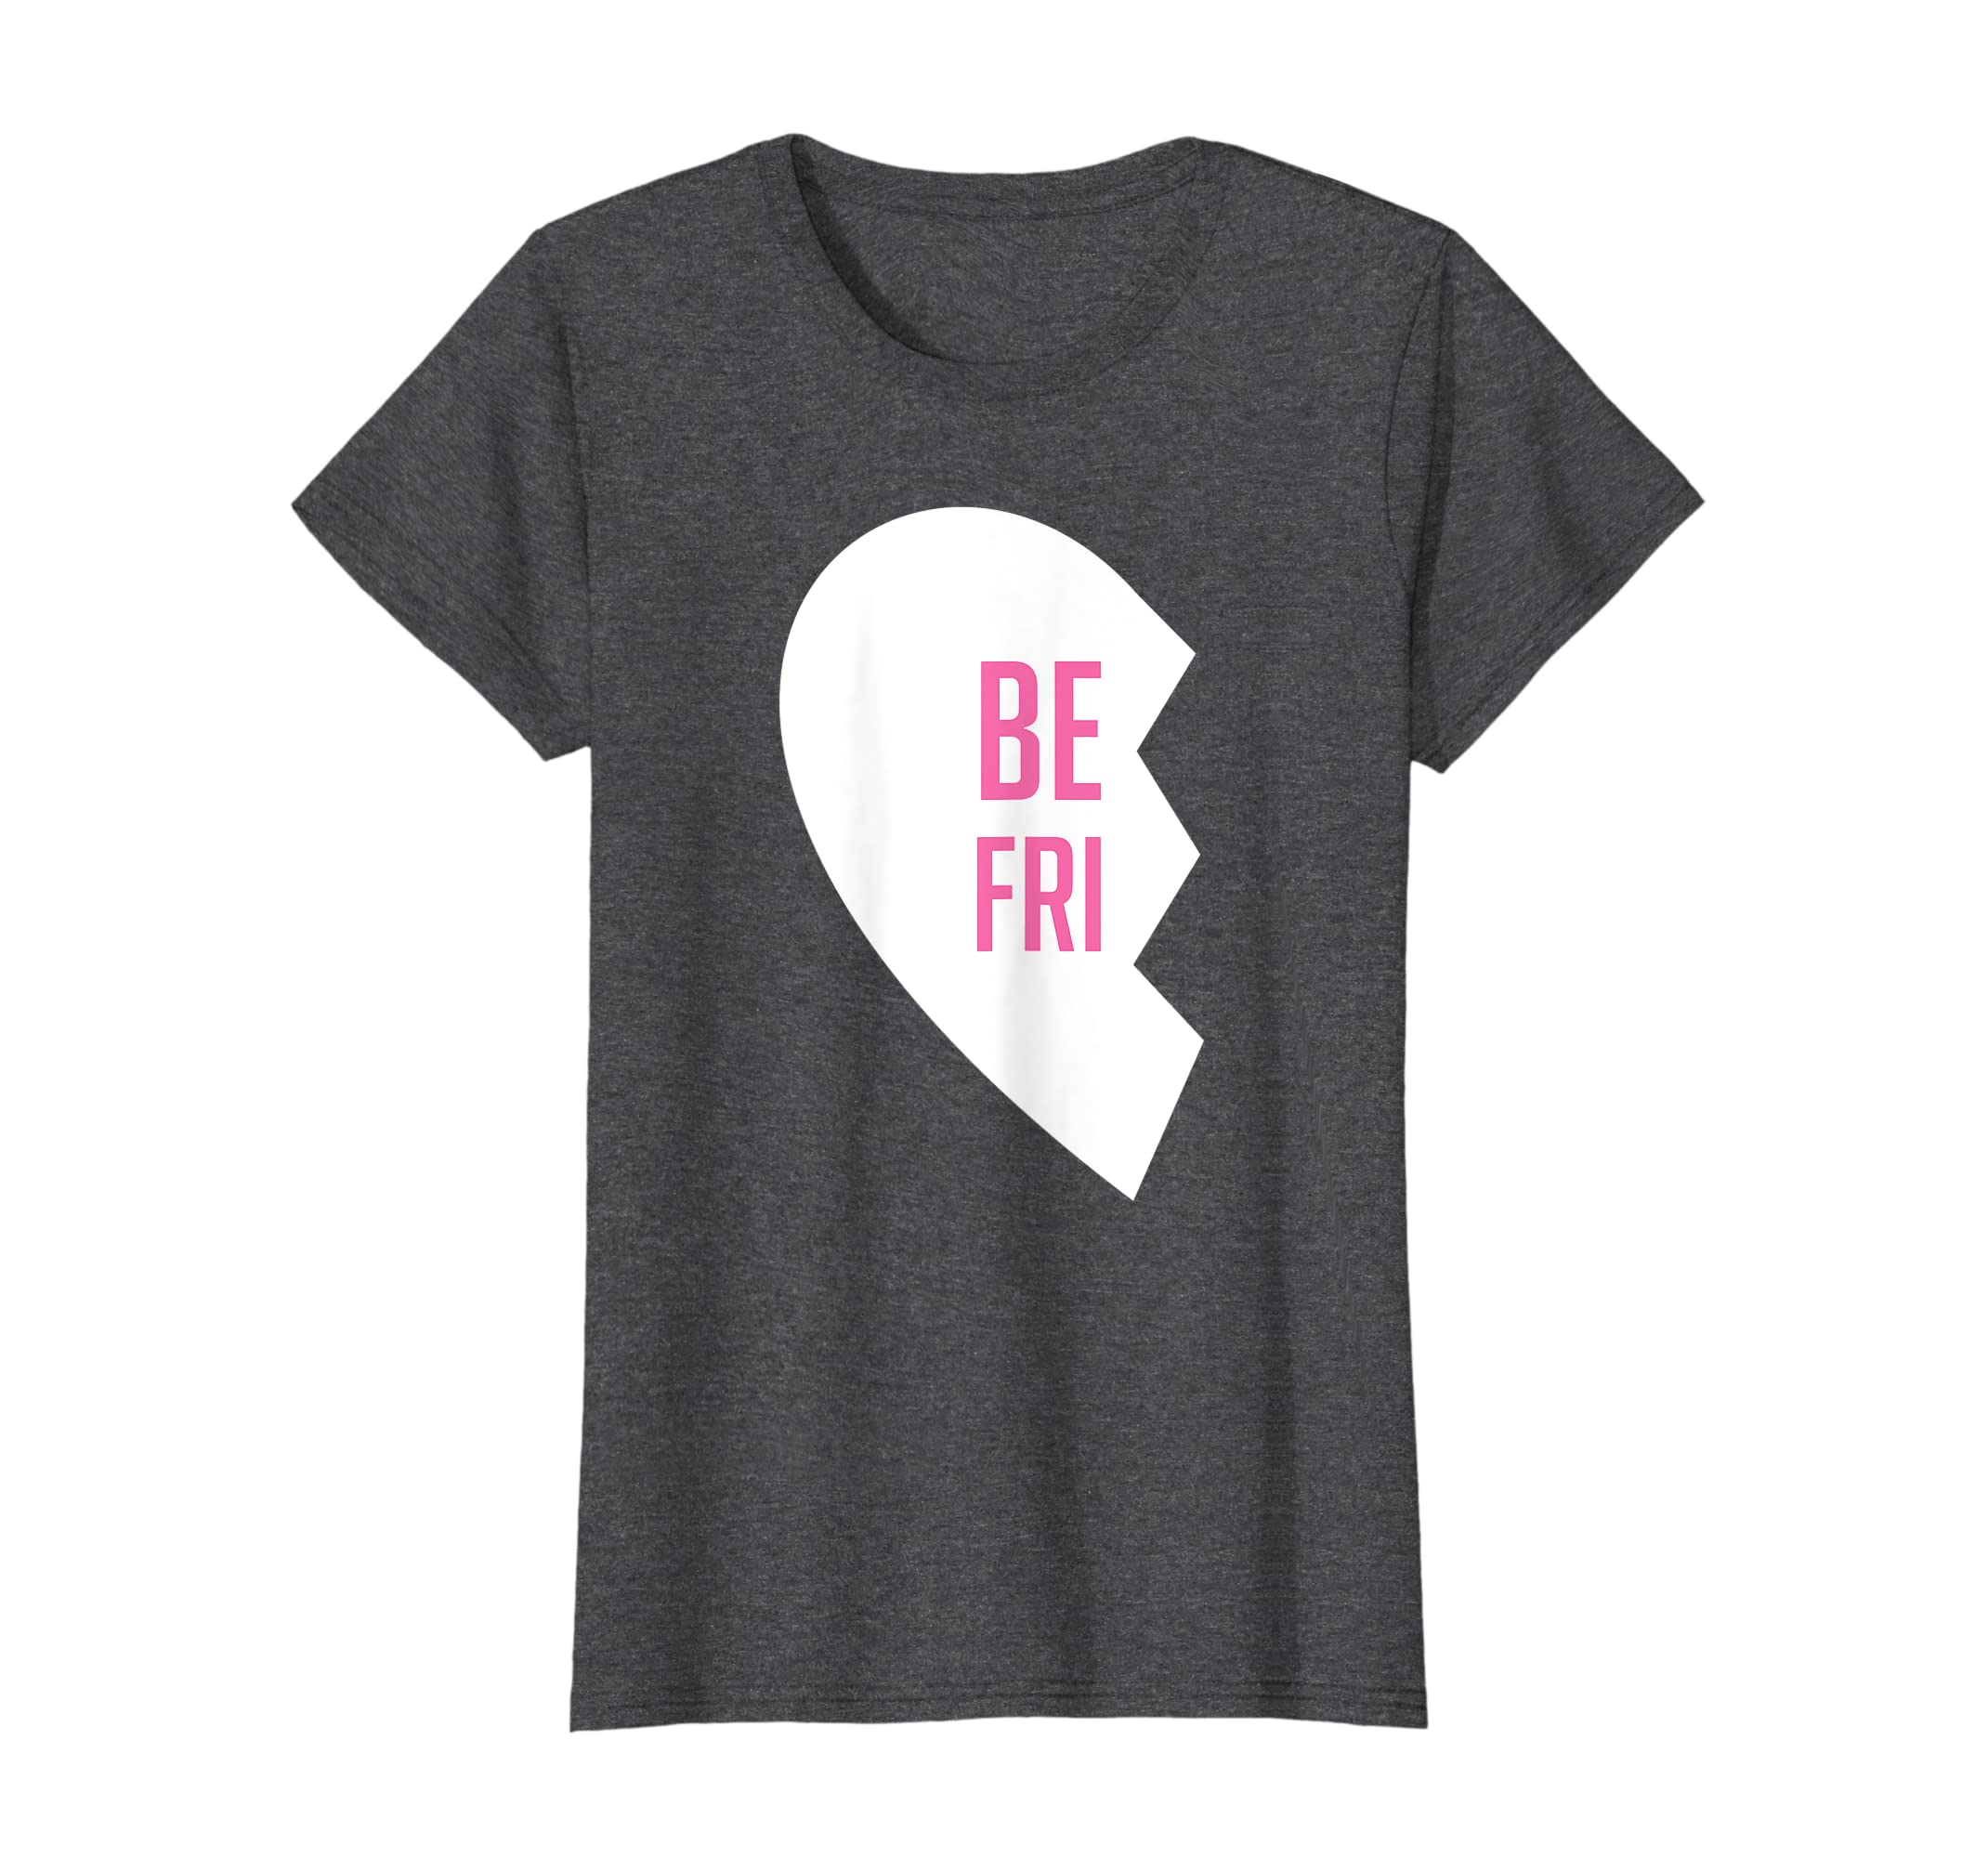 a68c59c91b946 ... com hearts best friend t shirts matching bff outfits tees ...